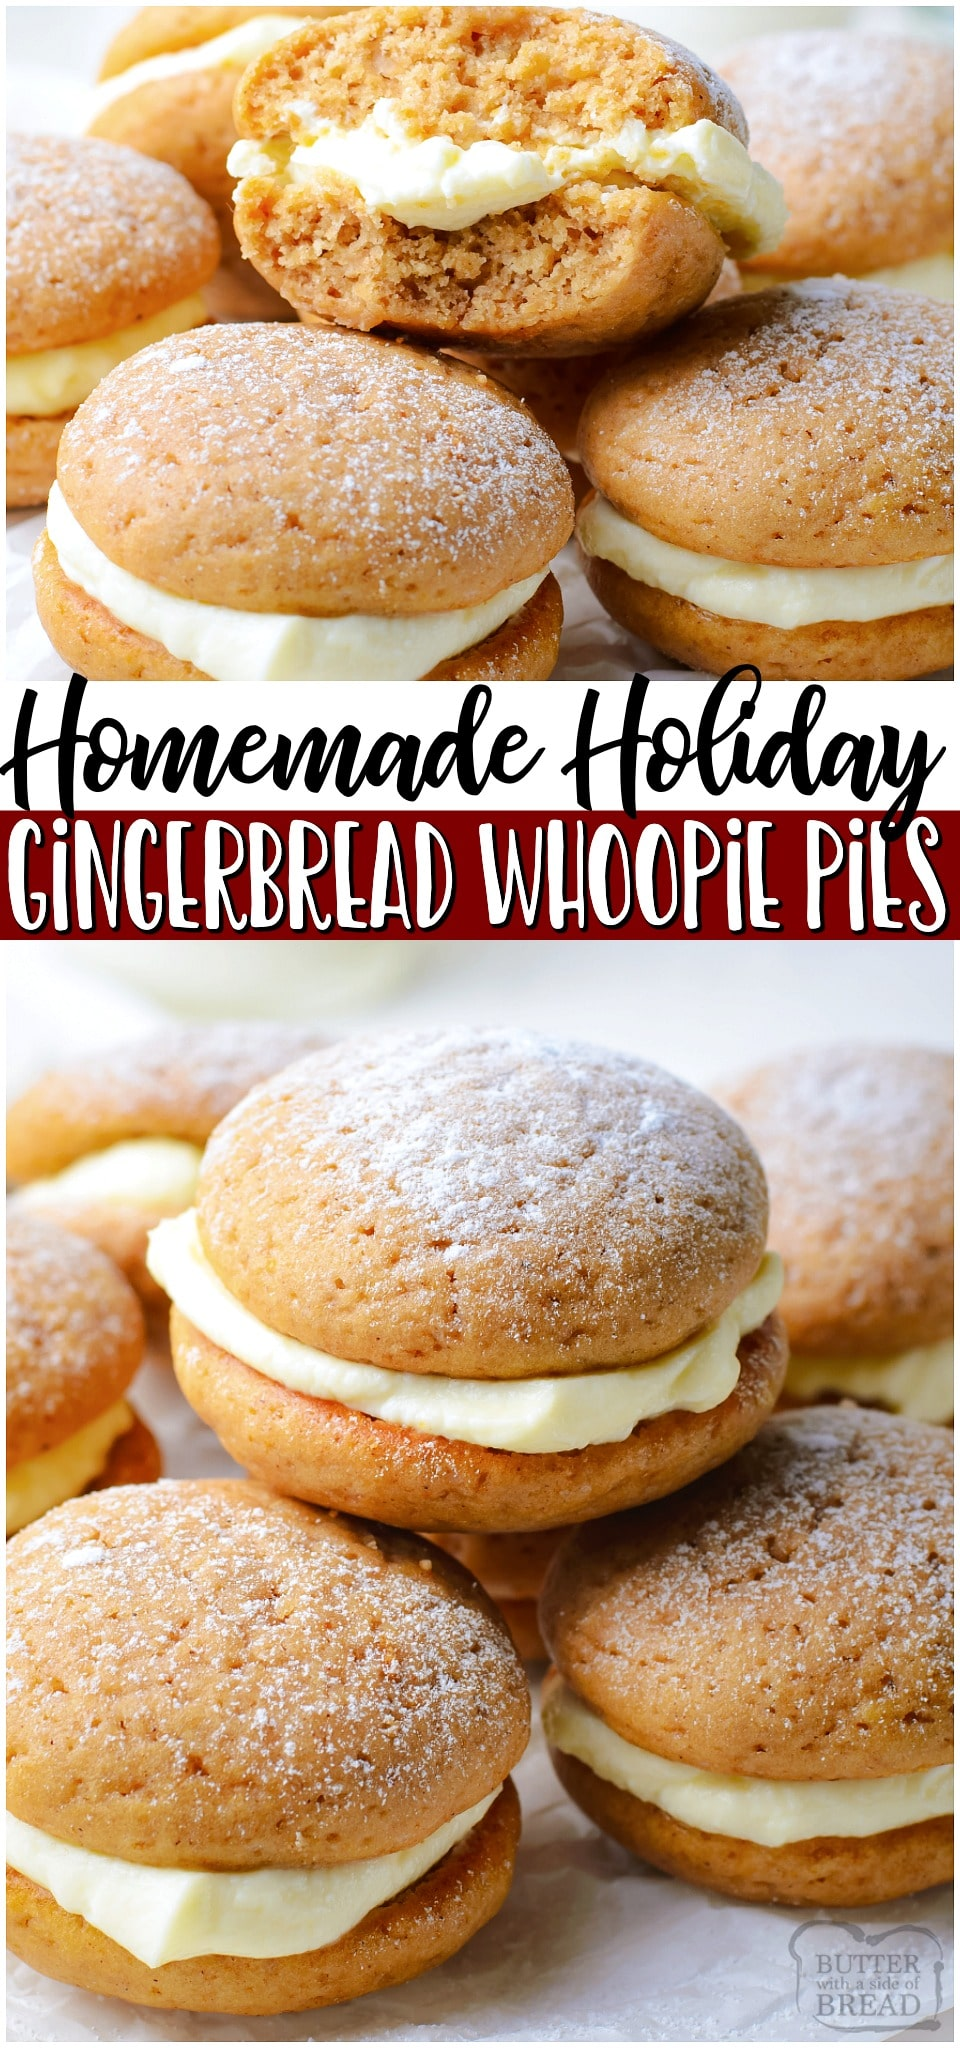 Gingerbread whoopie pies are soft, spiced gingerbread cookies with a lovely cream cheese filling. Perfect gingerbread treat for the holidays!